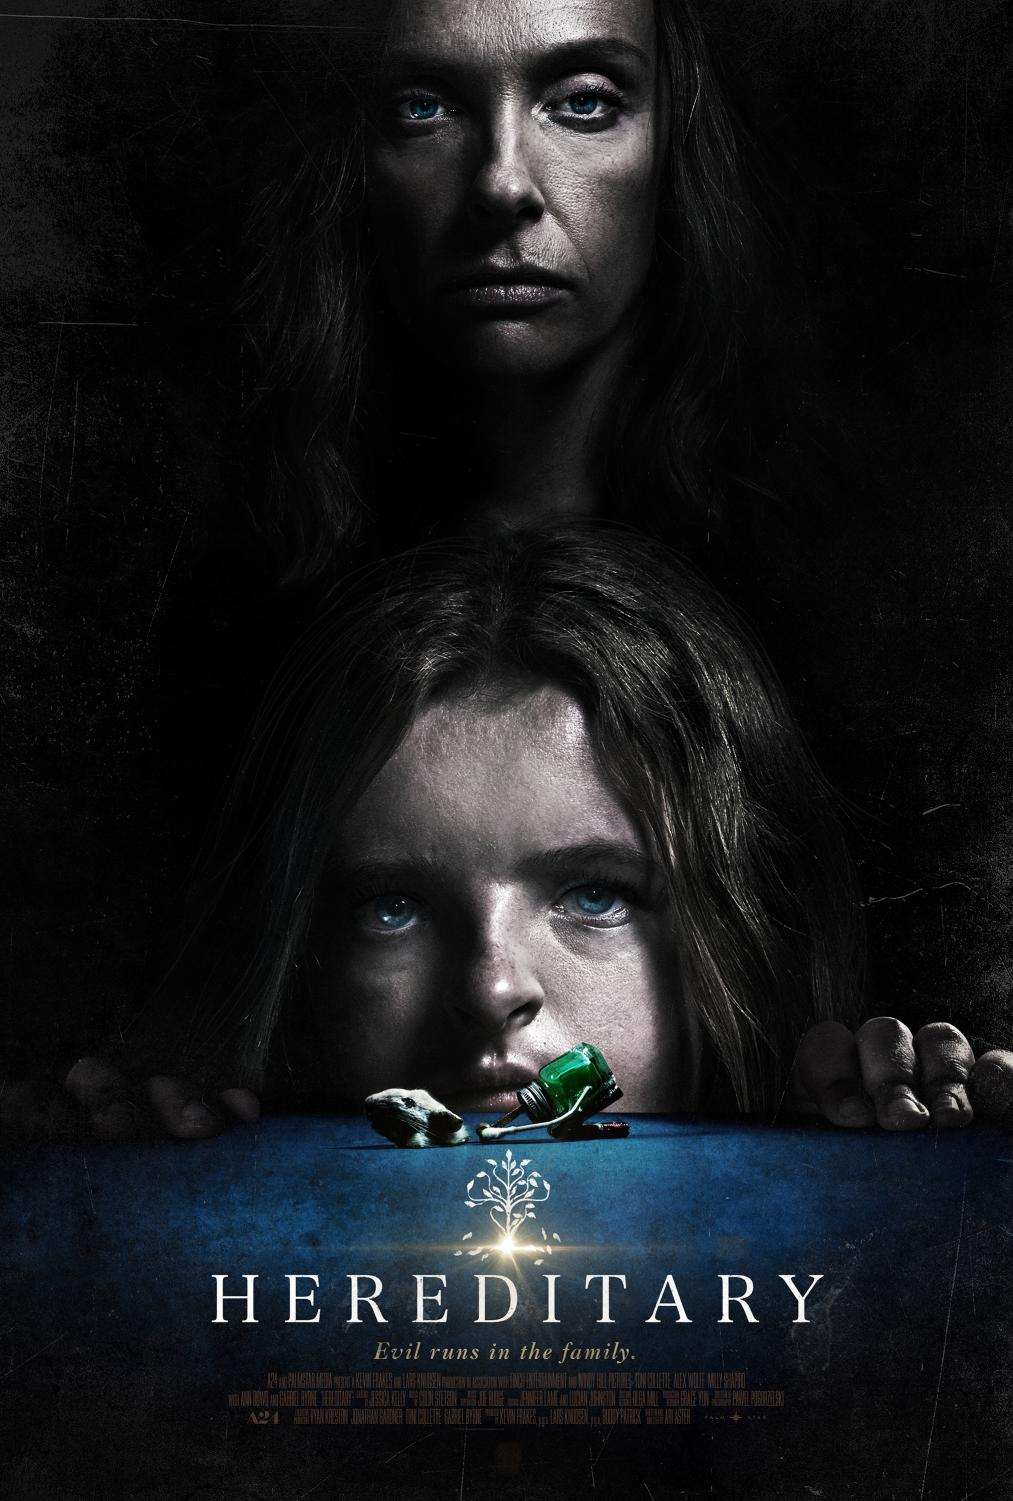 Hereditary poster courtesy of A24 under Creative Commons License